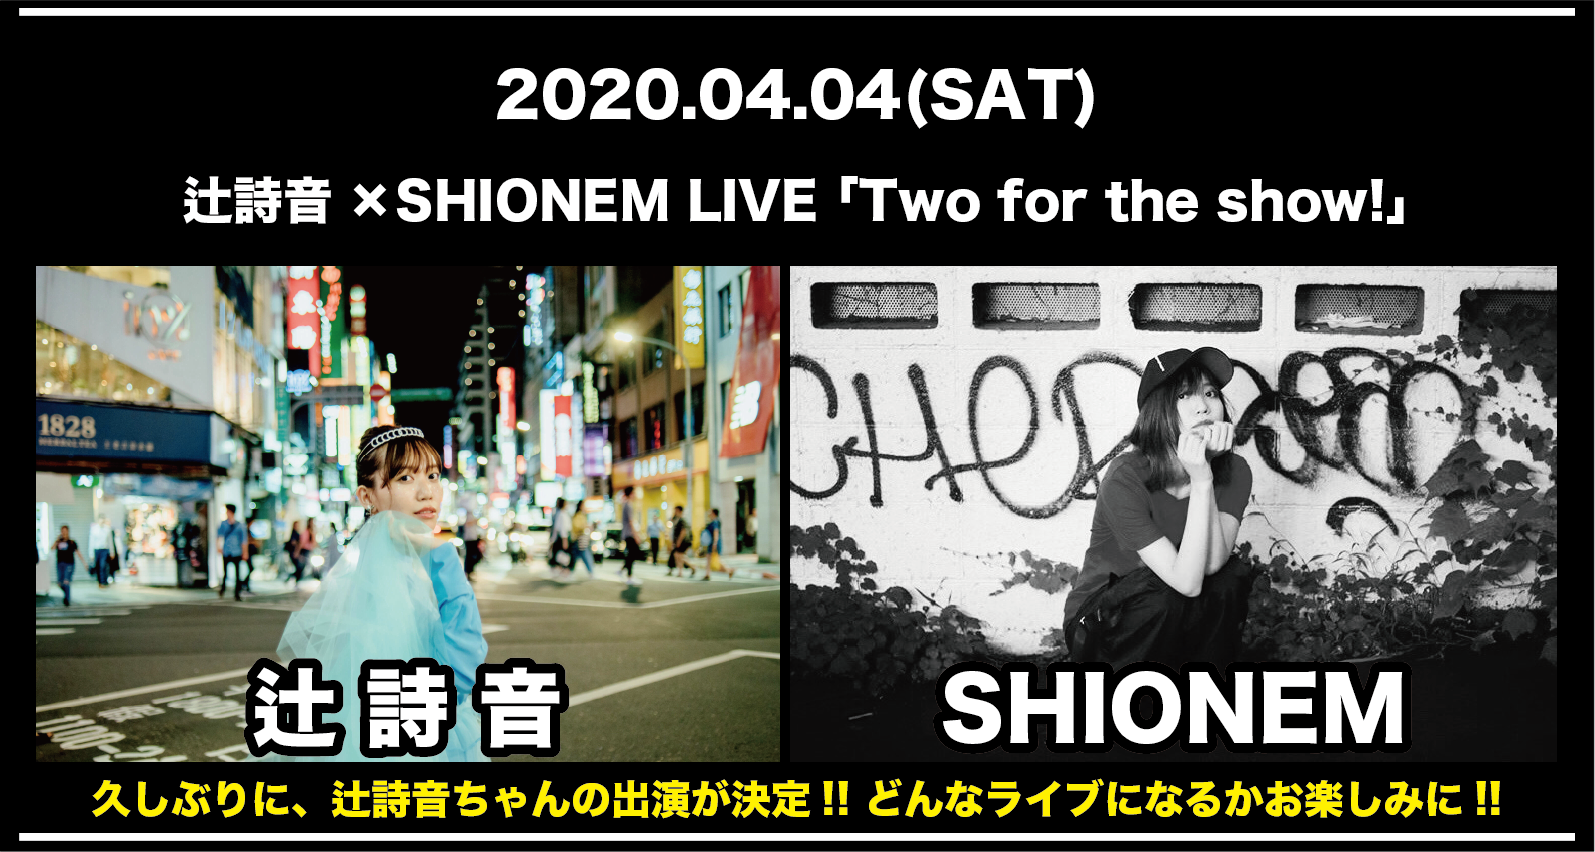 辻詩音×SHIONEM LIVE 「Two for the show!」